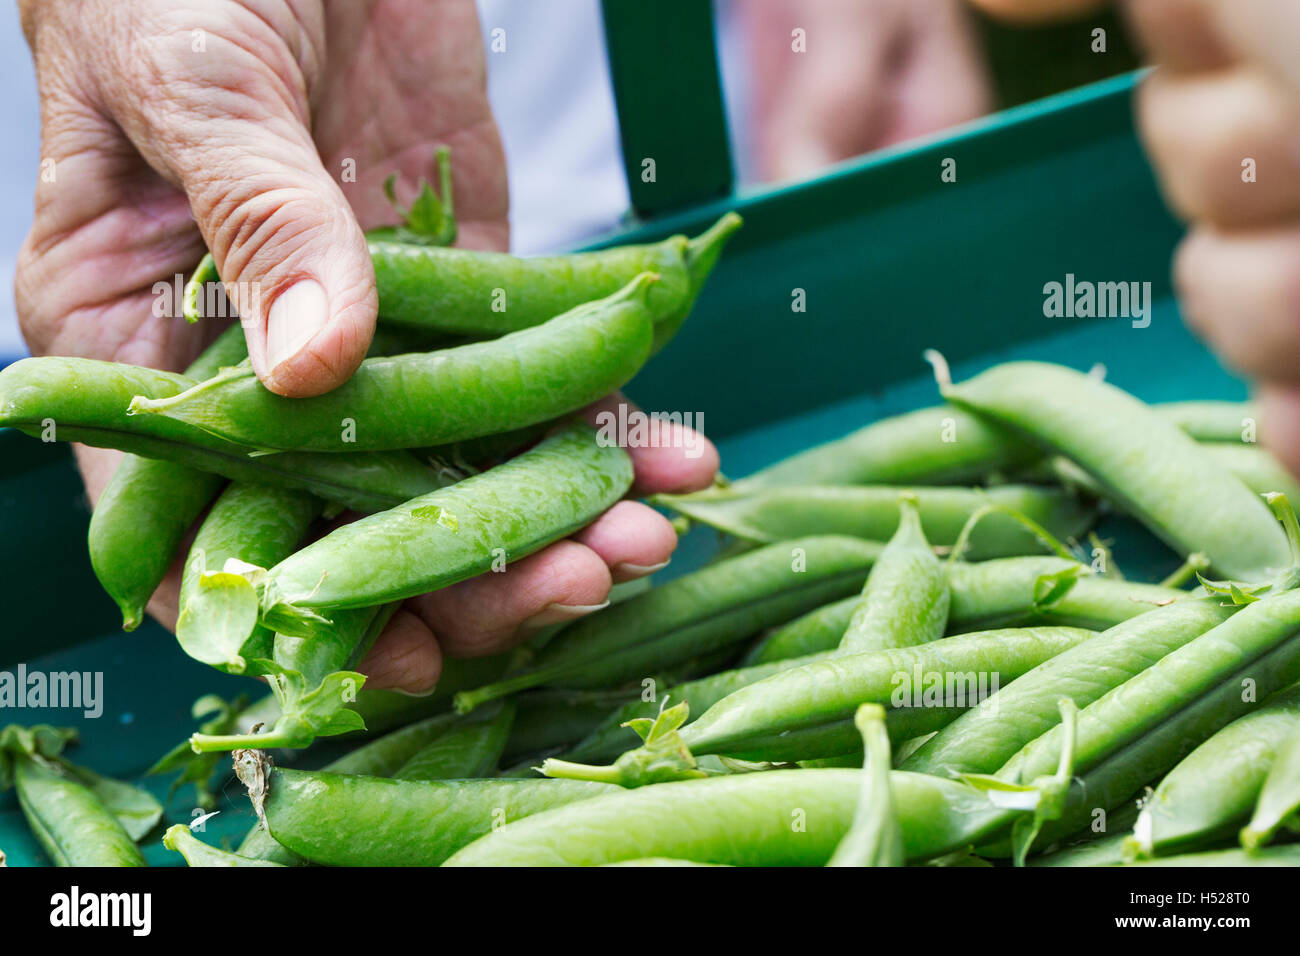 A person holding a handful of fresh picked garden pea pods. - Stock Image